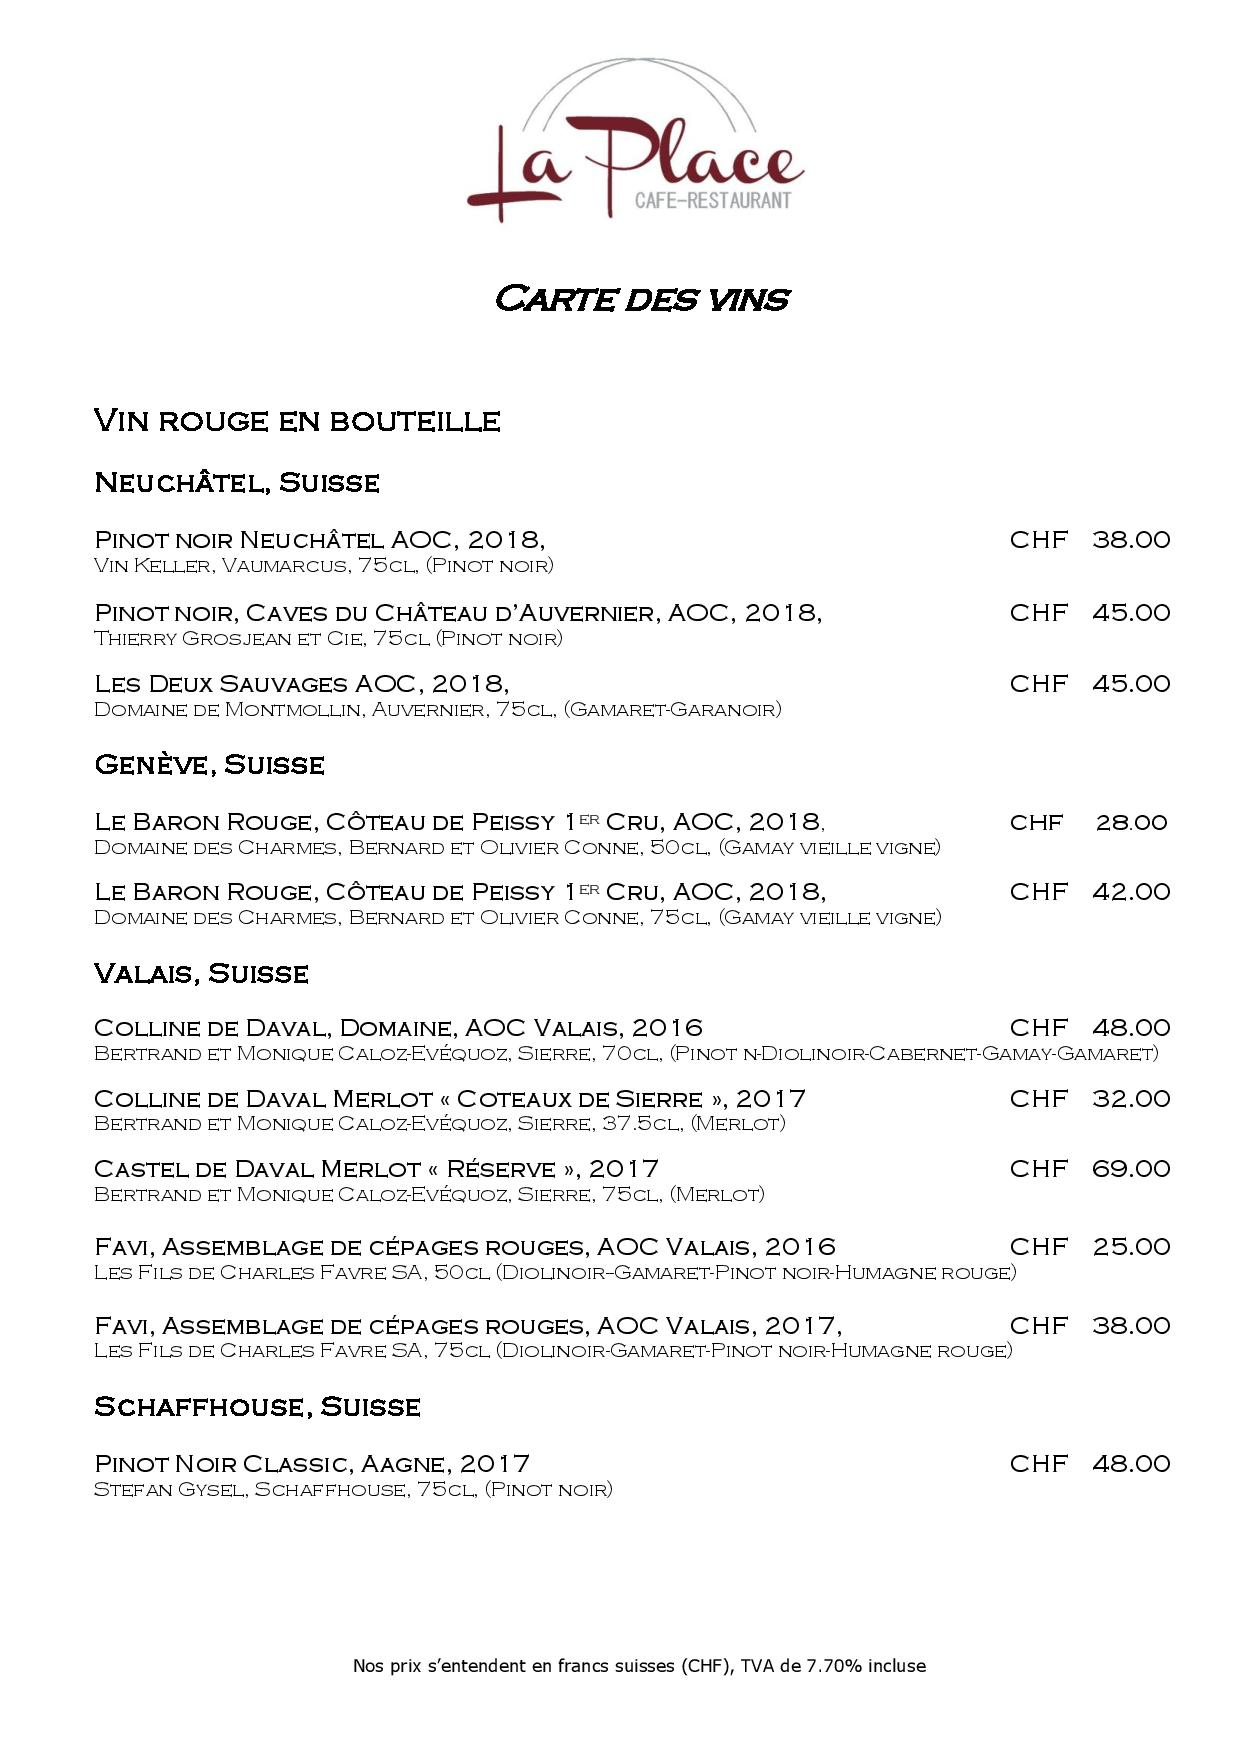 image-9331523-Carte_des_vins_rouges_version_1-page-001.jpg